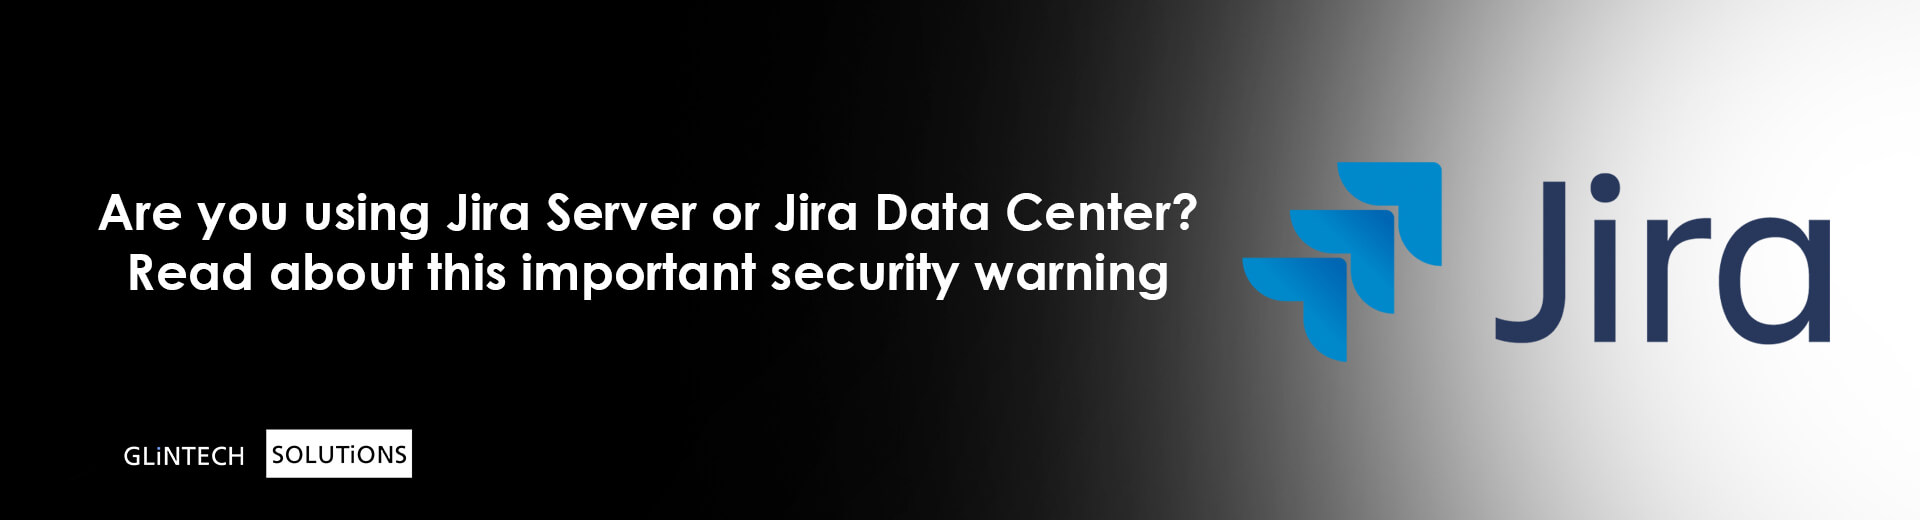 Are you using Jira Software &